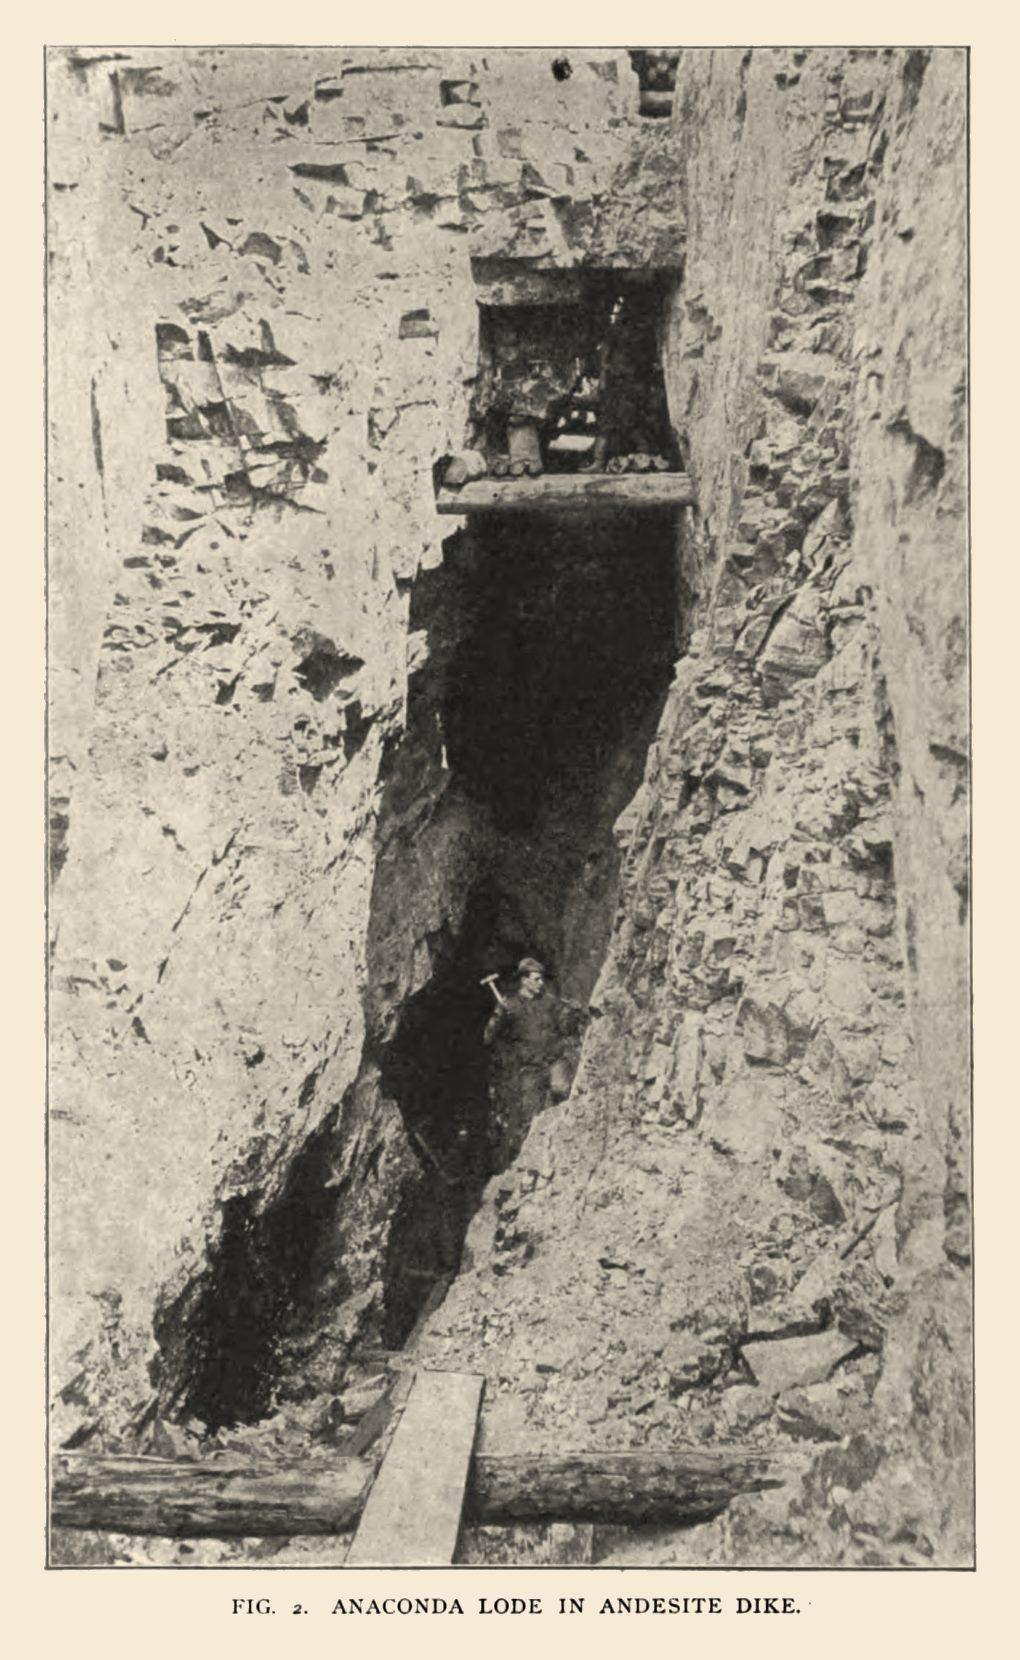 This is from a photograph of the Anaconda lode as seen in an open-cut in July, 1897. The lode at this place forms a part of an andesite dike traversing the breccia. The dike exhibits a multiplication of fractures parallel to its walls, and along these lines of cleavage there occur seams of quartz and fluorite carrying tellurides.   In the surface workings, the gold liberated from the tellurides occurred pseudomorphic after sylvanite, distributed in yellow patches amid purple fluorite, affording specimens of great beauty.